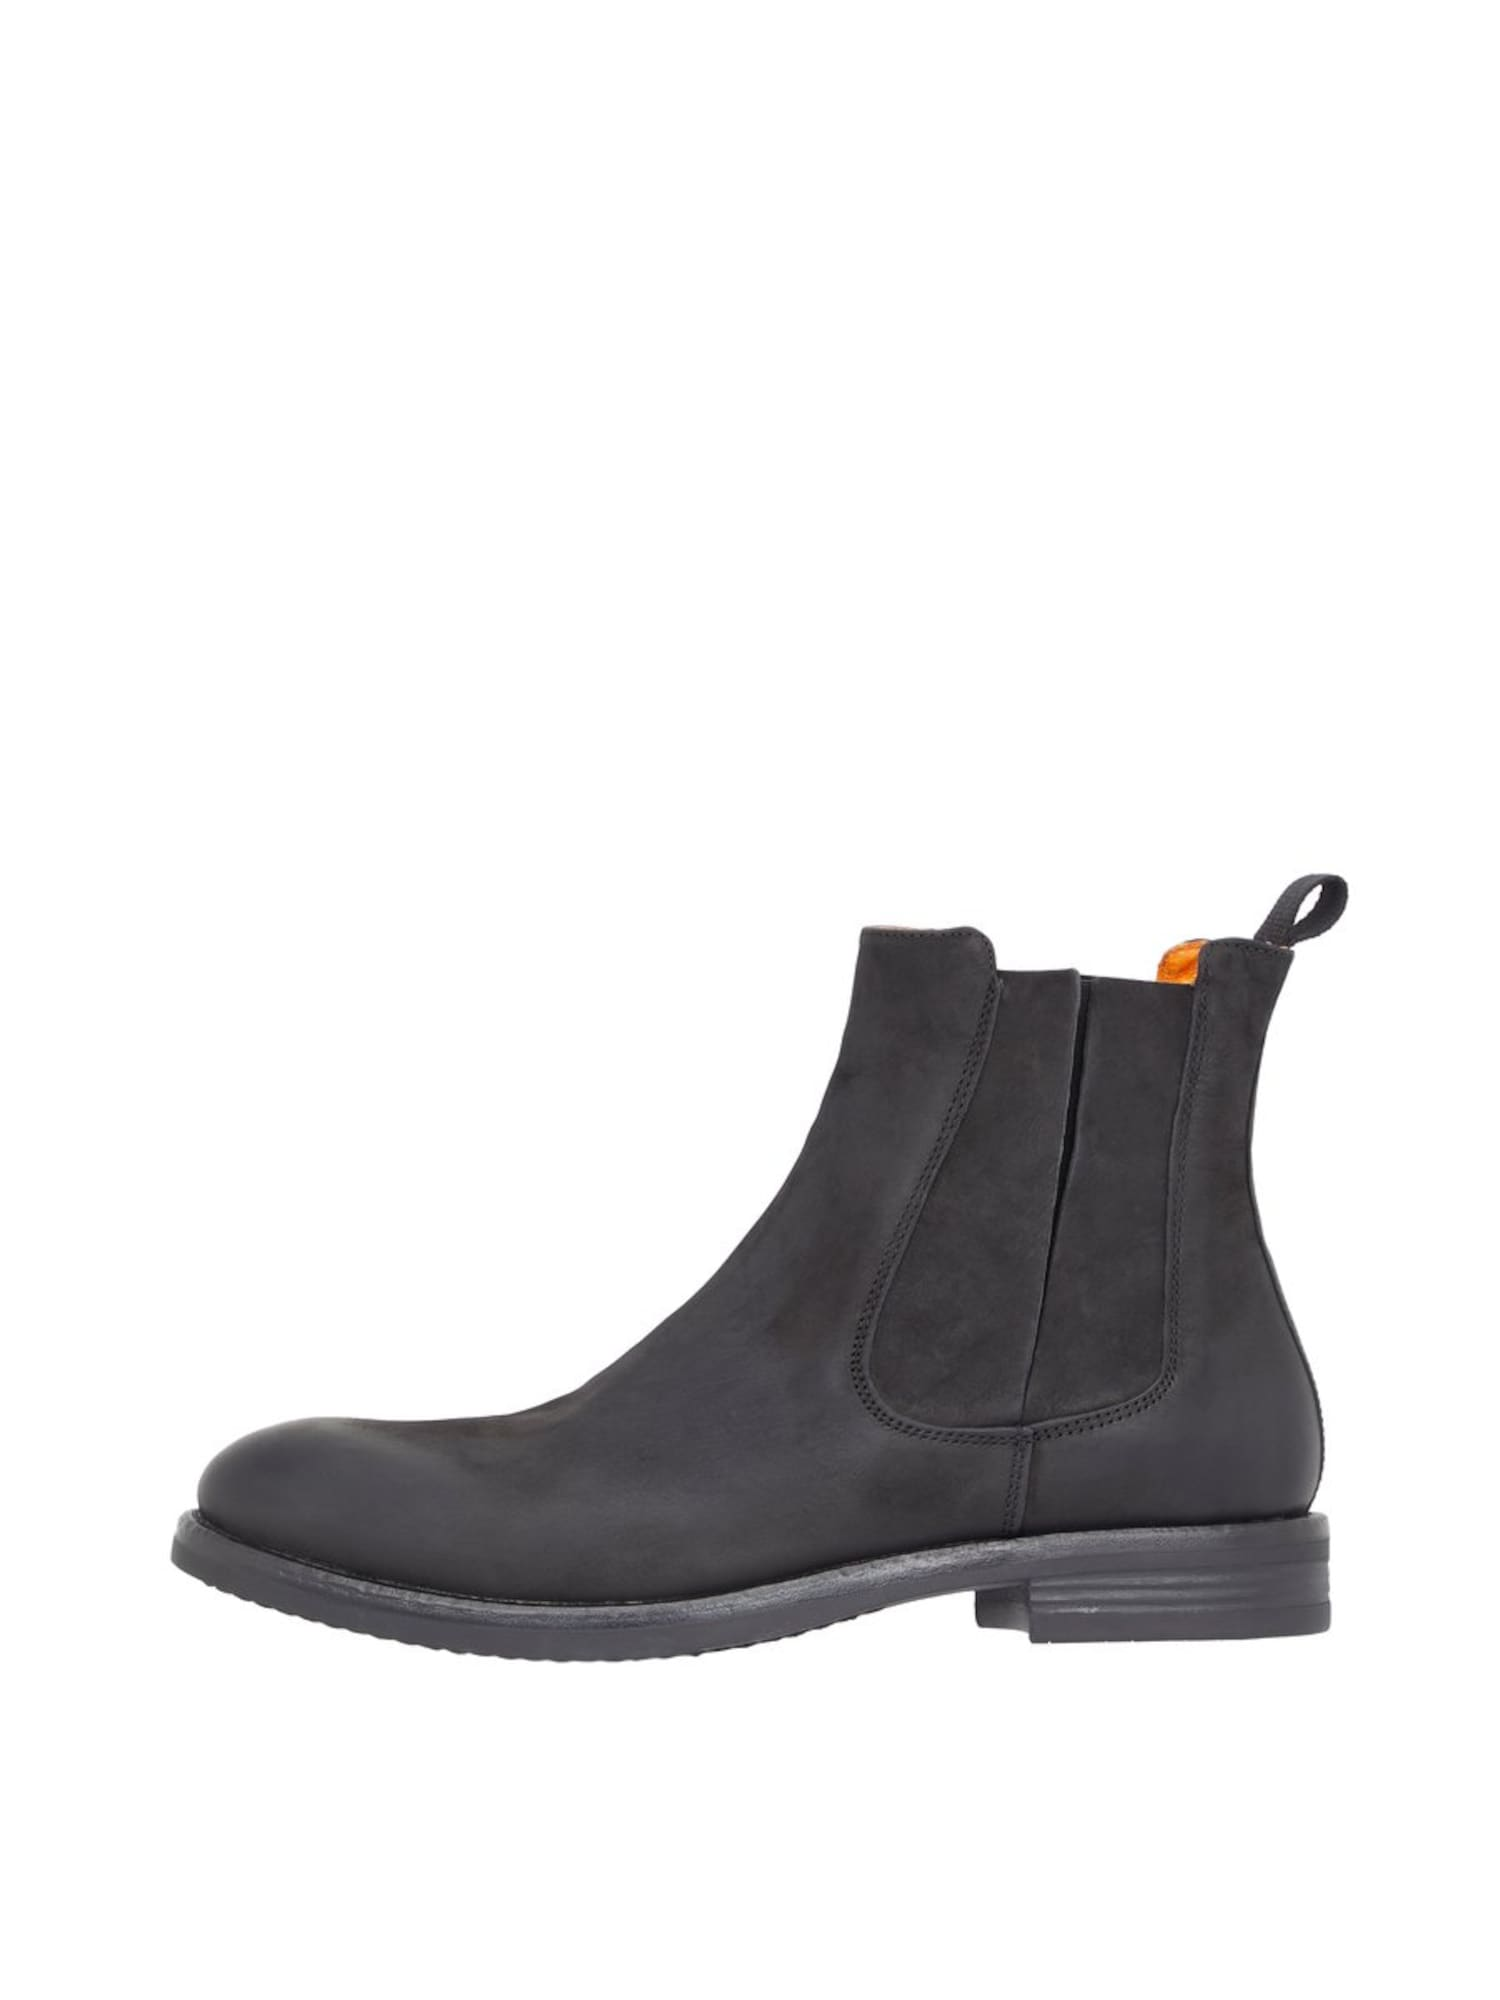 Chelsea Boots 'ACE' | Schuhe > Boots > Chelsea-Boots | Bianco